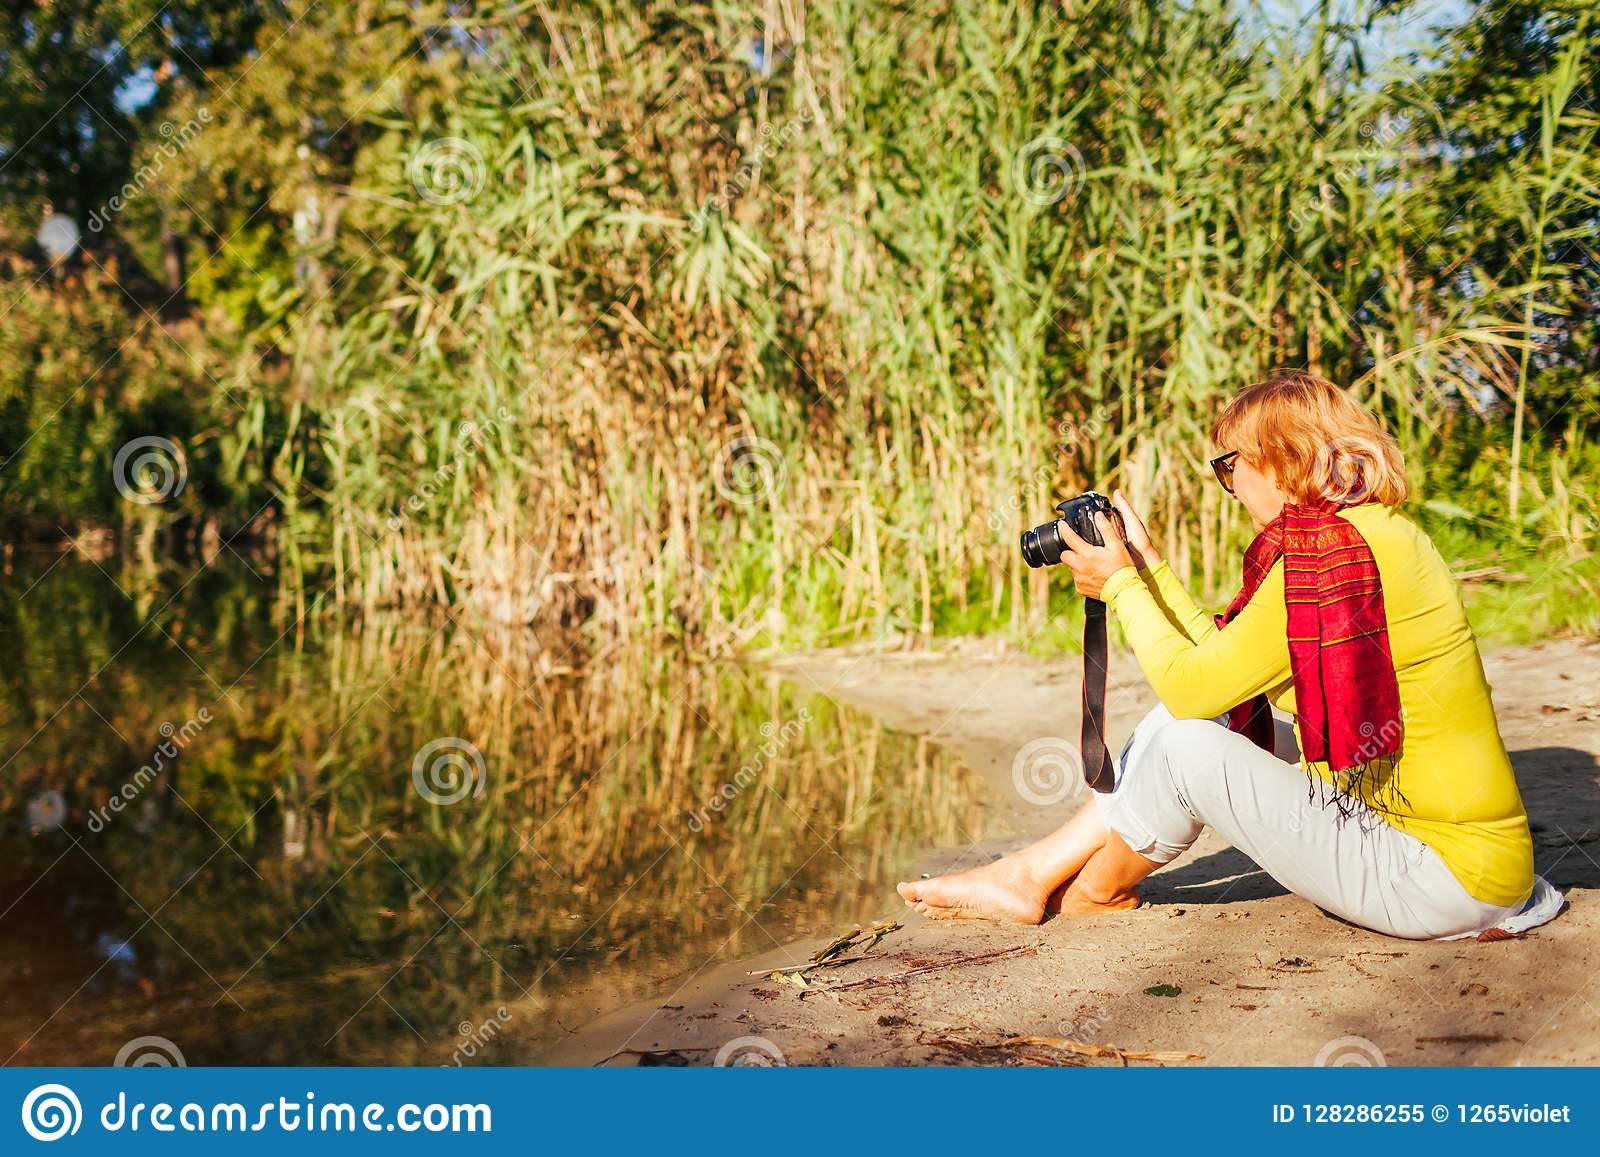 Middle-aged woman checking images on camera sitting by autumn river bank. Senior woman enjoying hobby